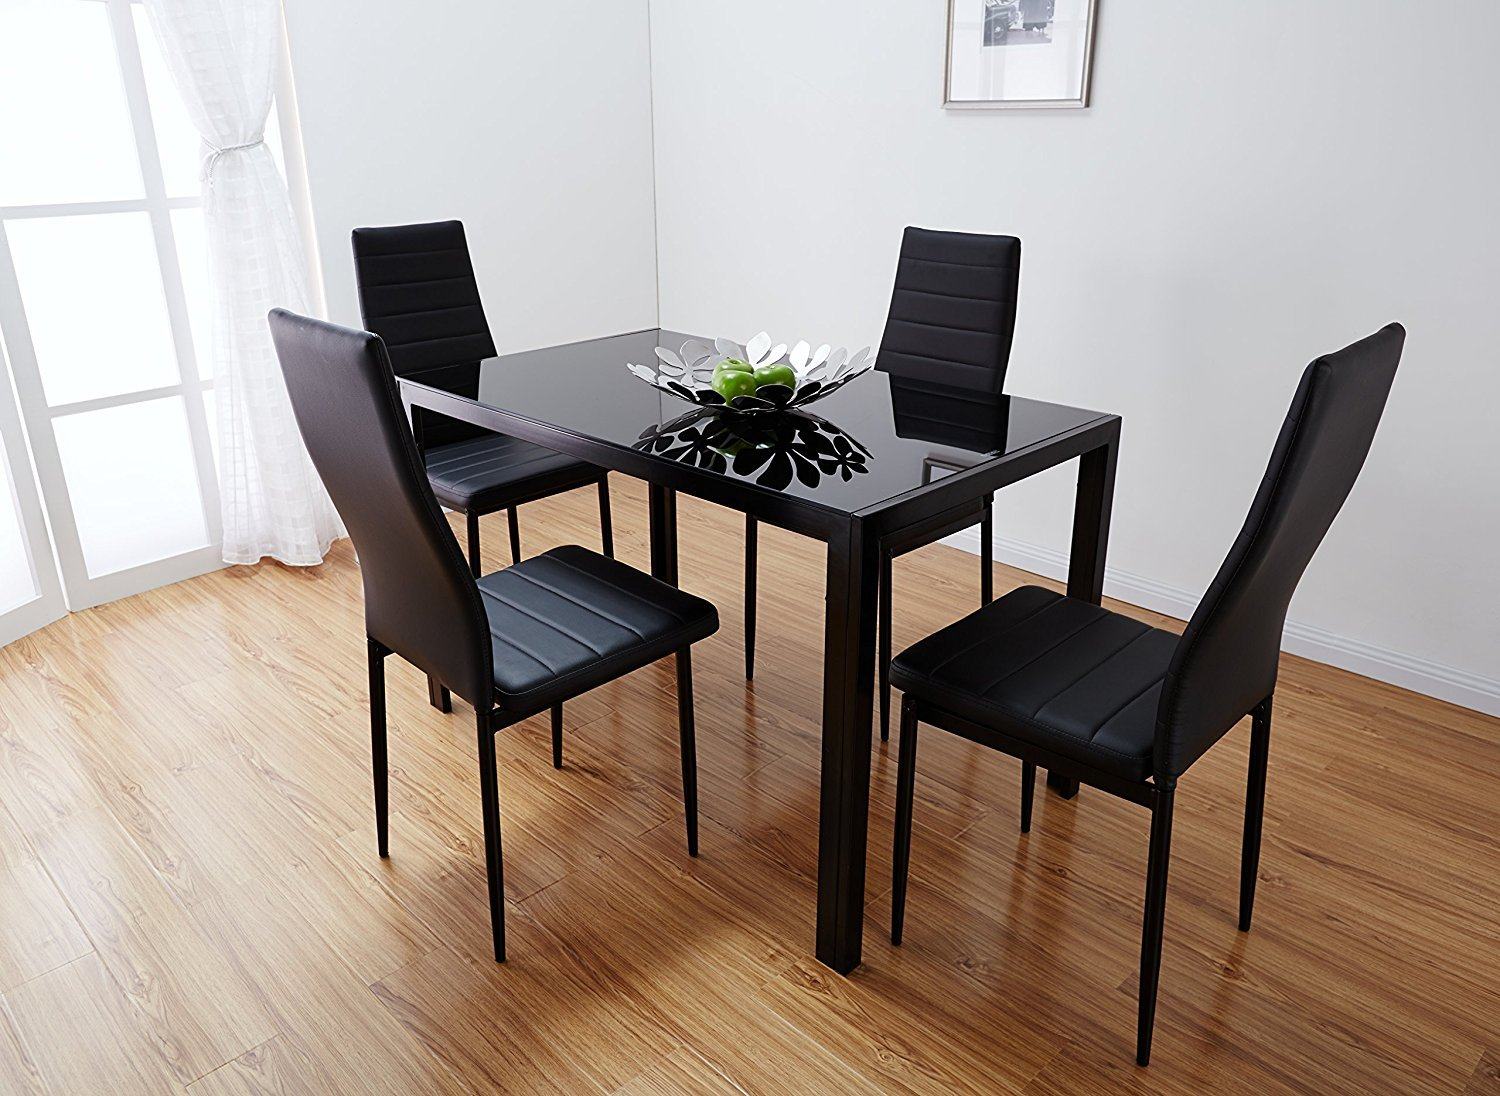 Black Glass Dining Table Set with 4 Faux Leather Chairs Brand New (Black) EBS